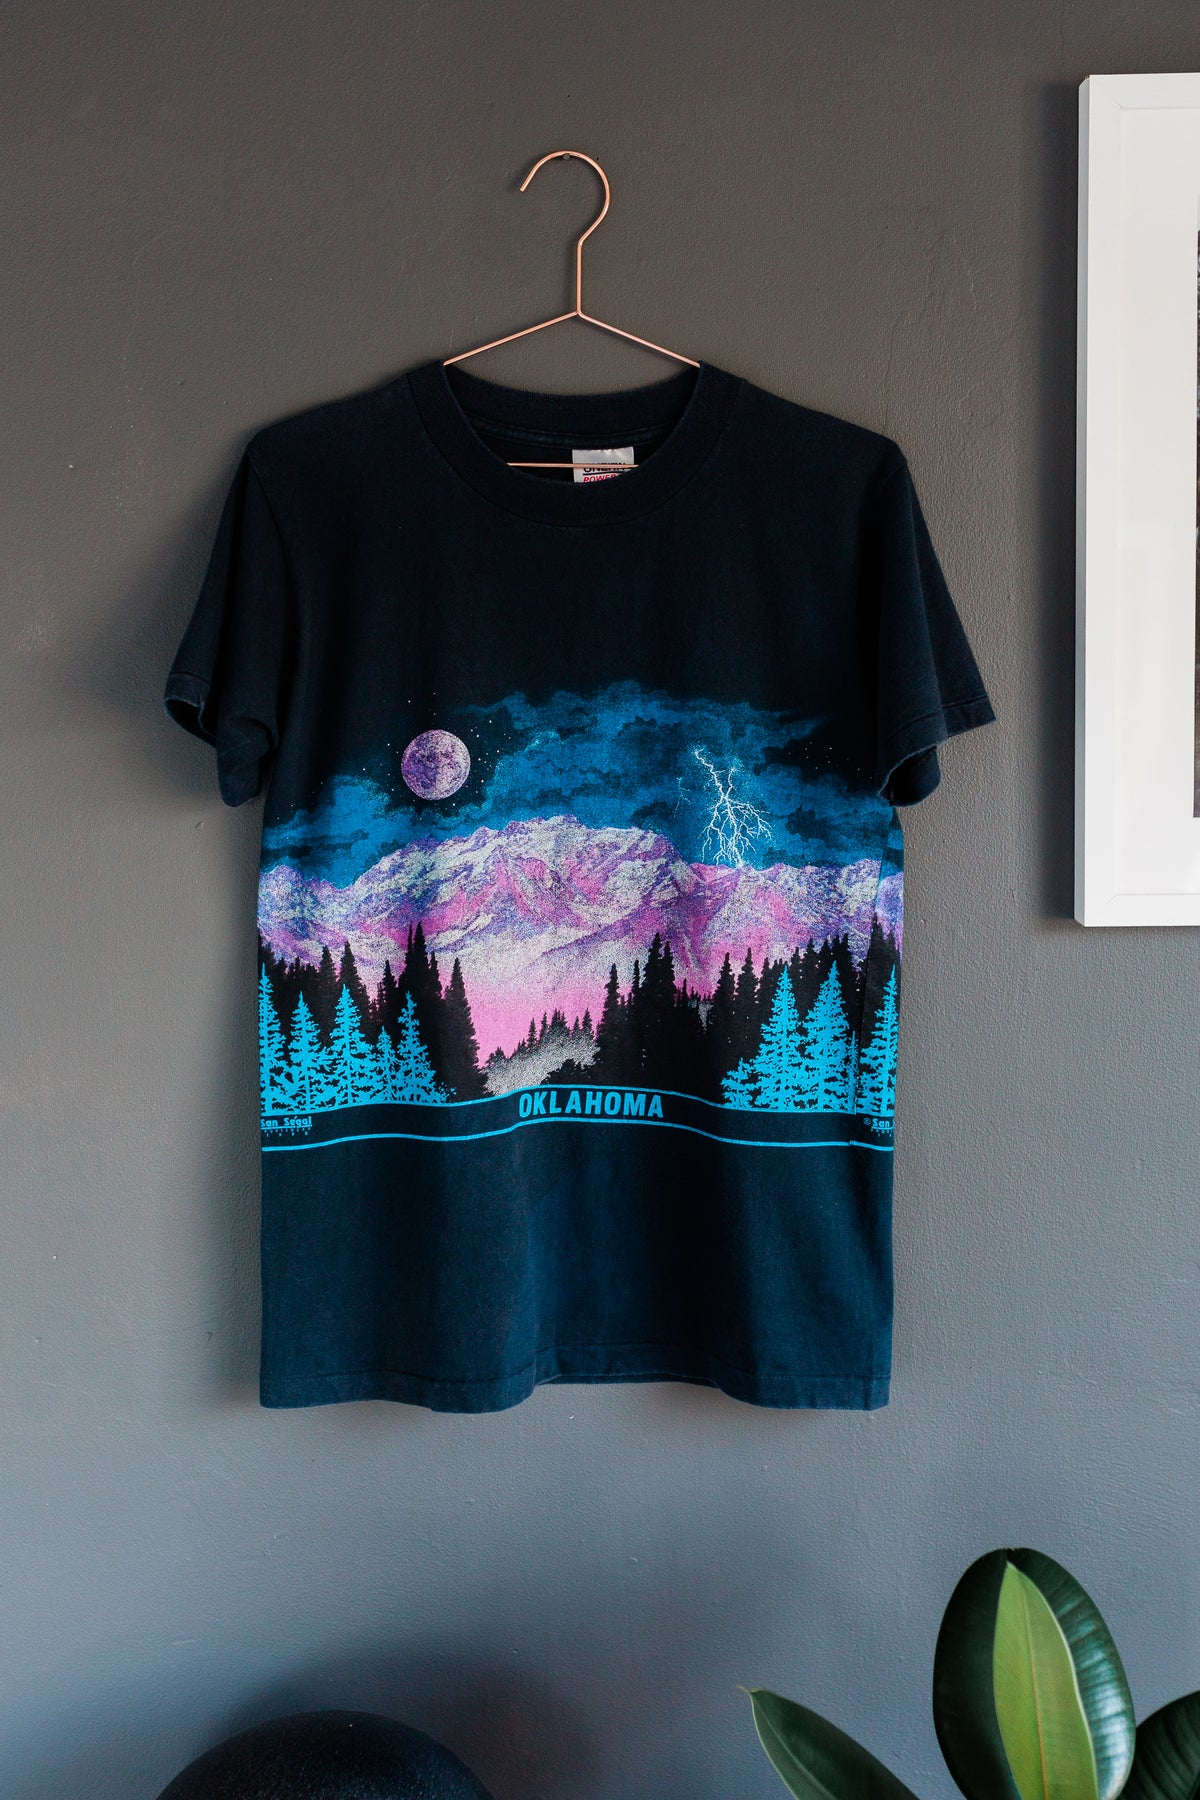 Image of Vintage early 90's Oklahoma Mountains Shirt